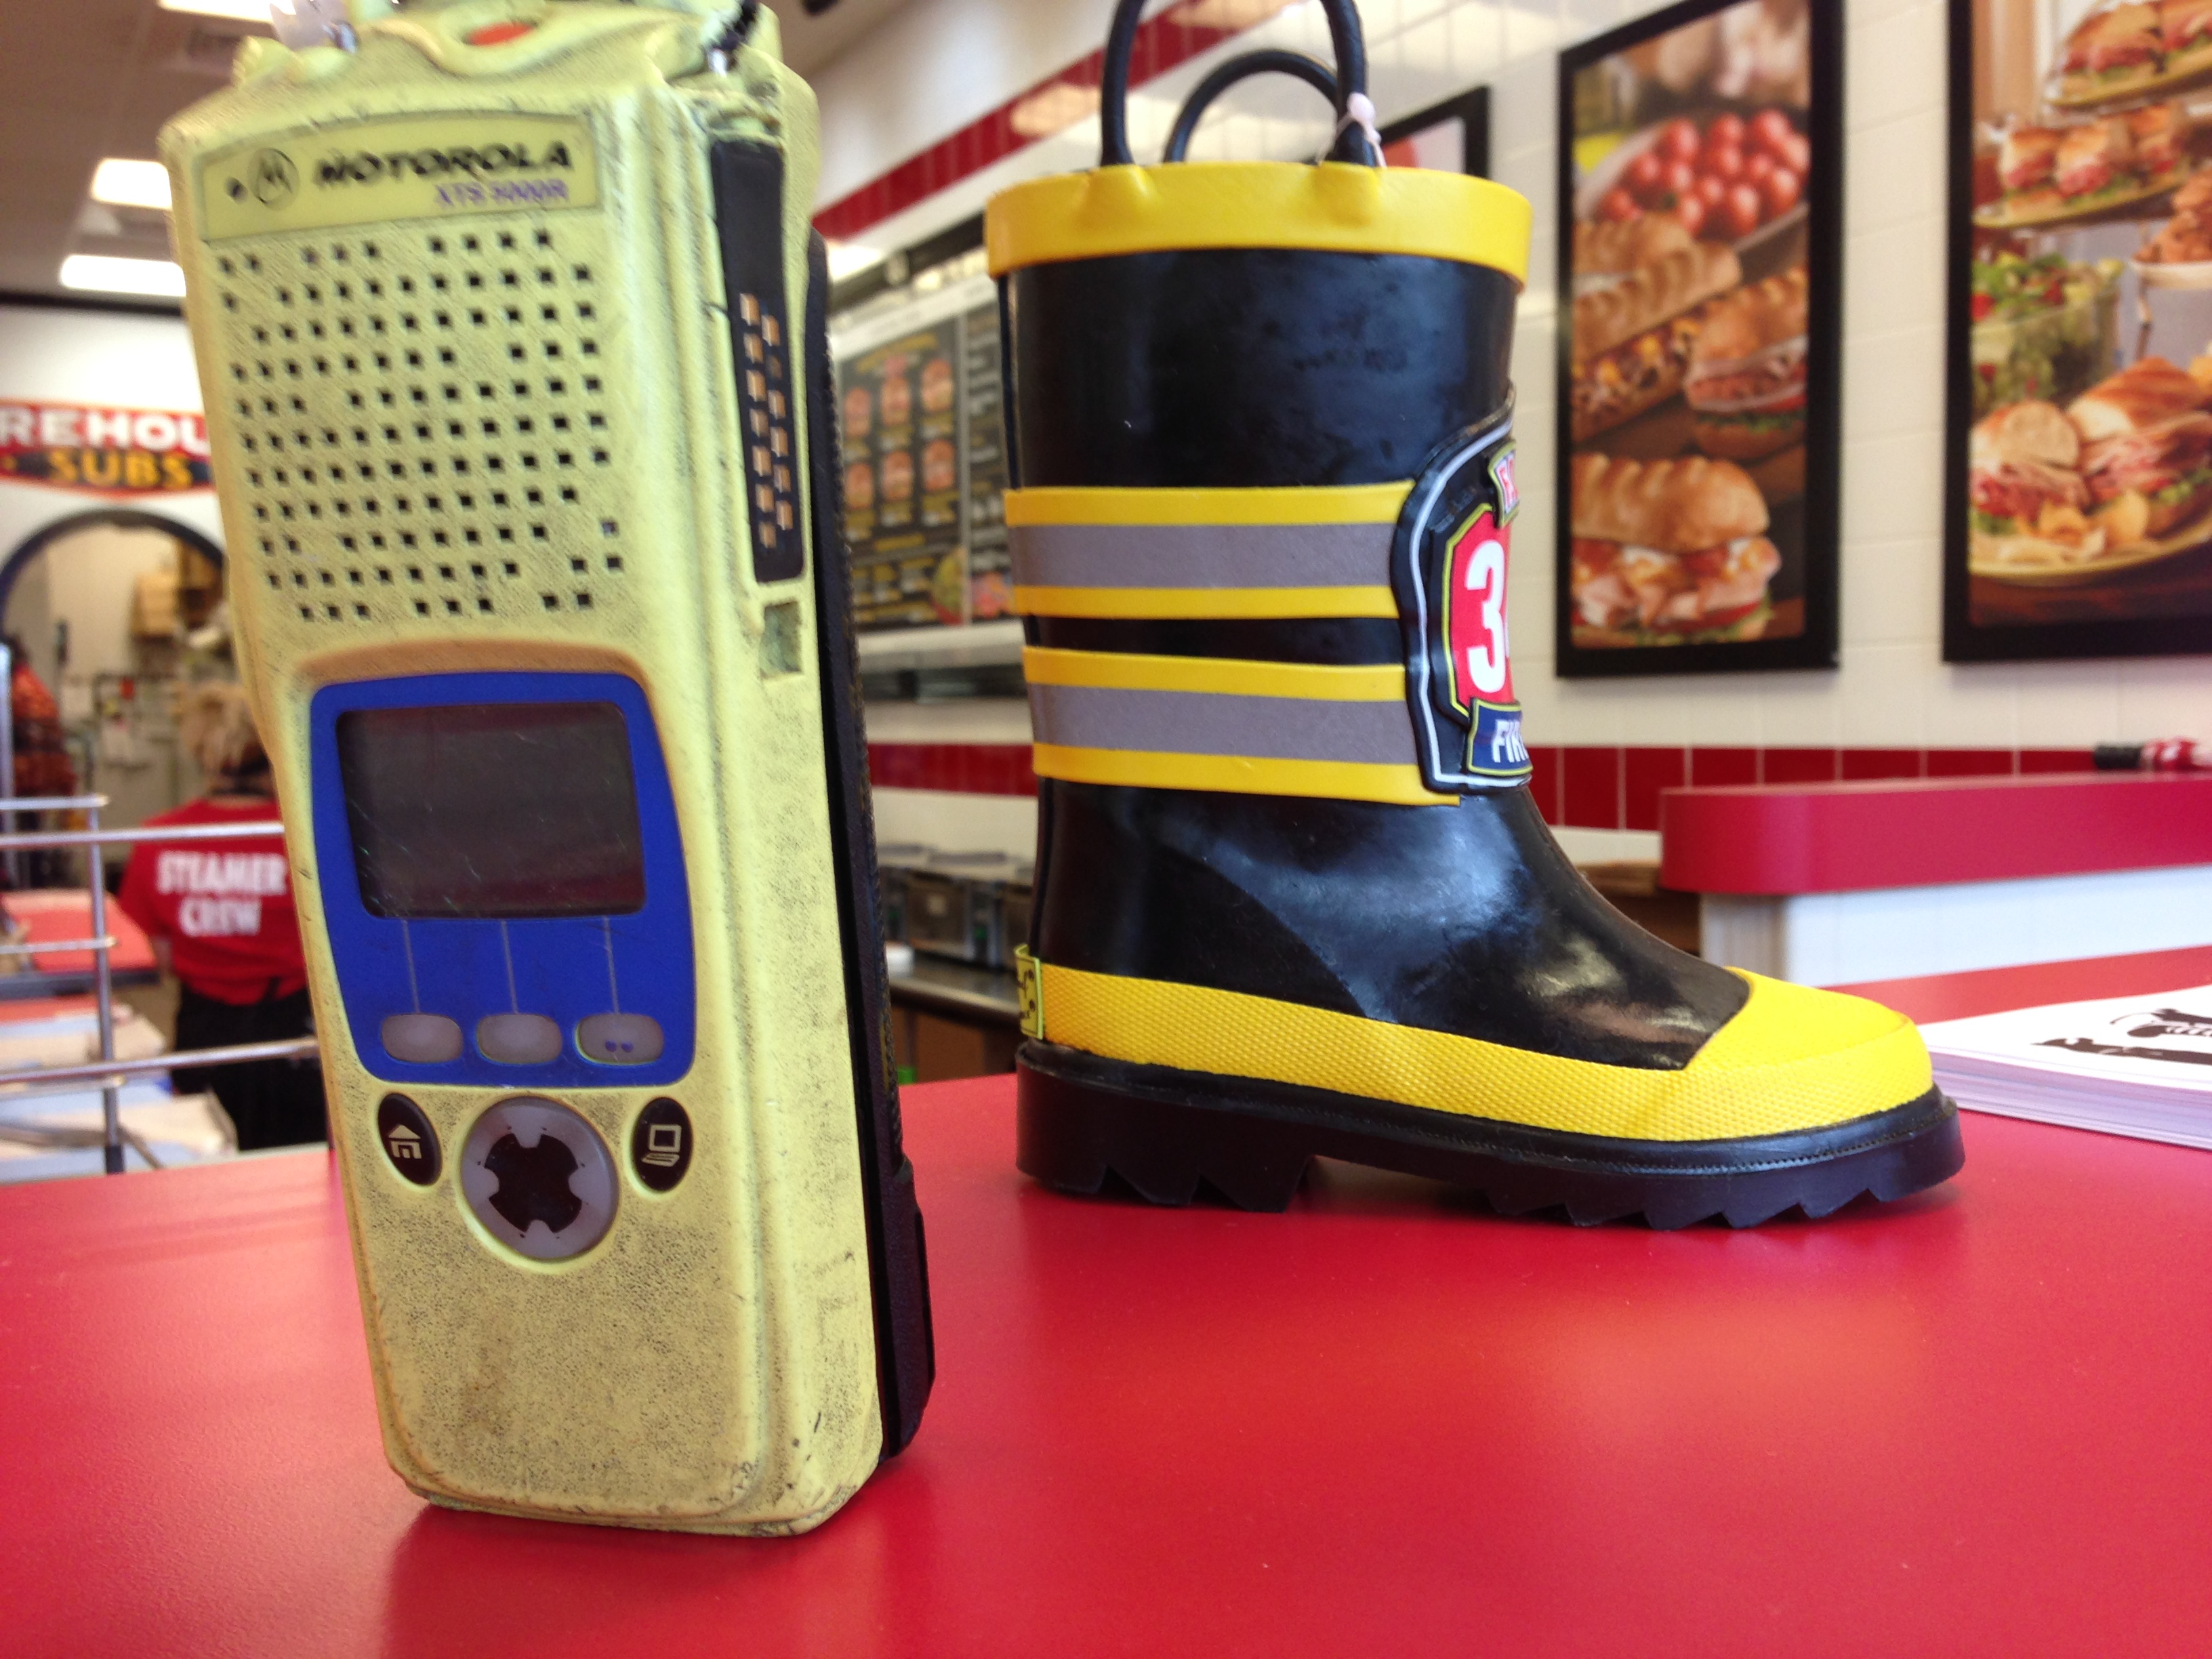 Walkie Talkie and Fireman Boot